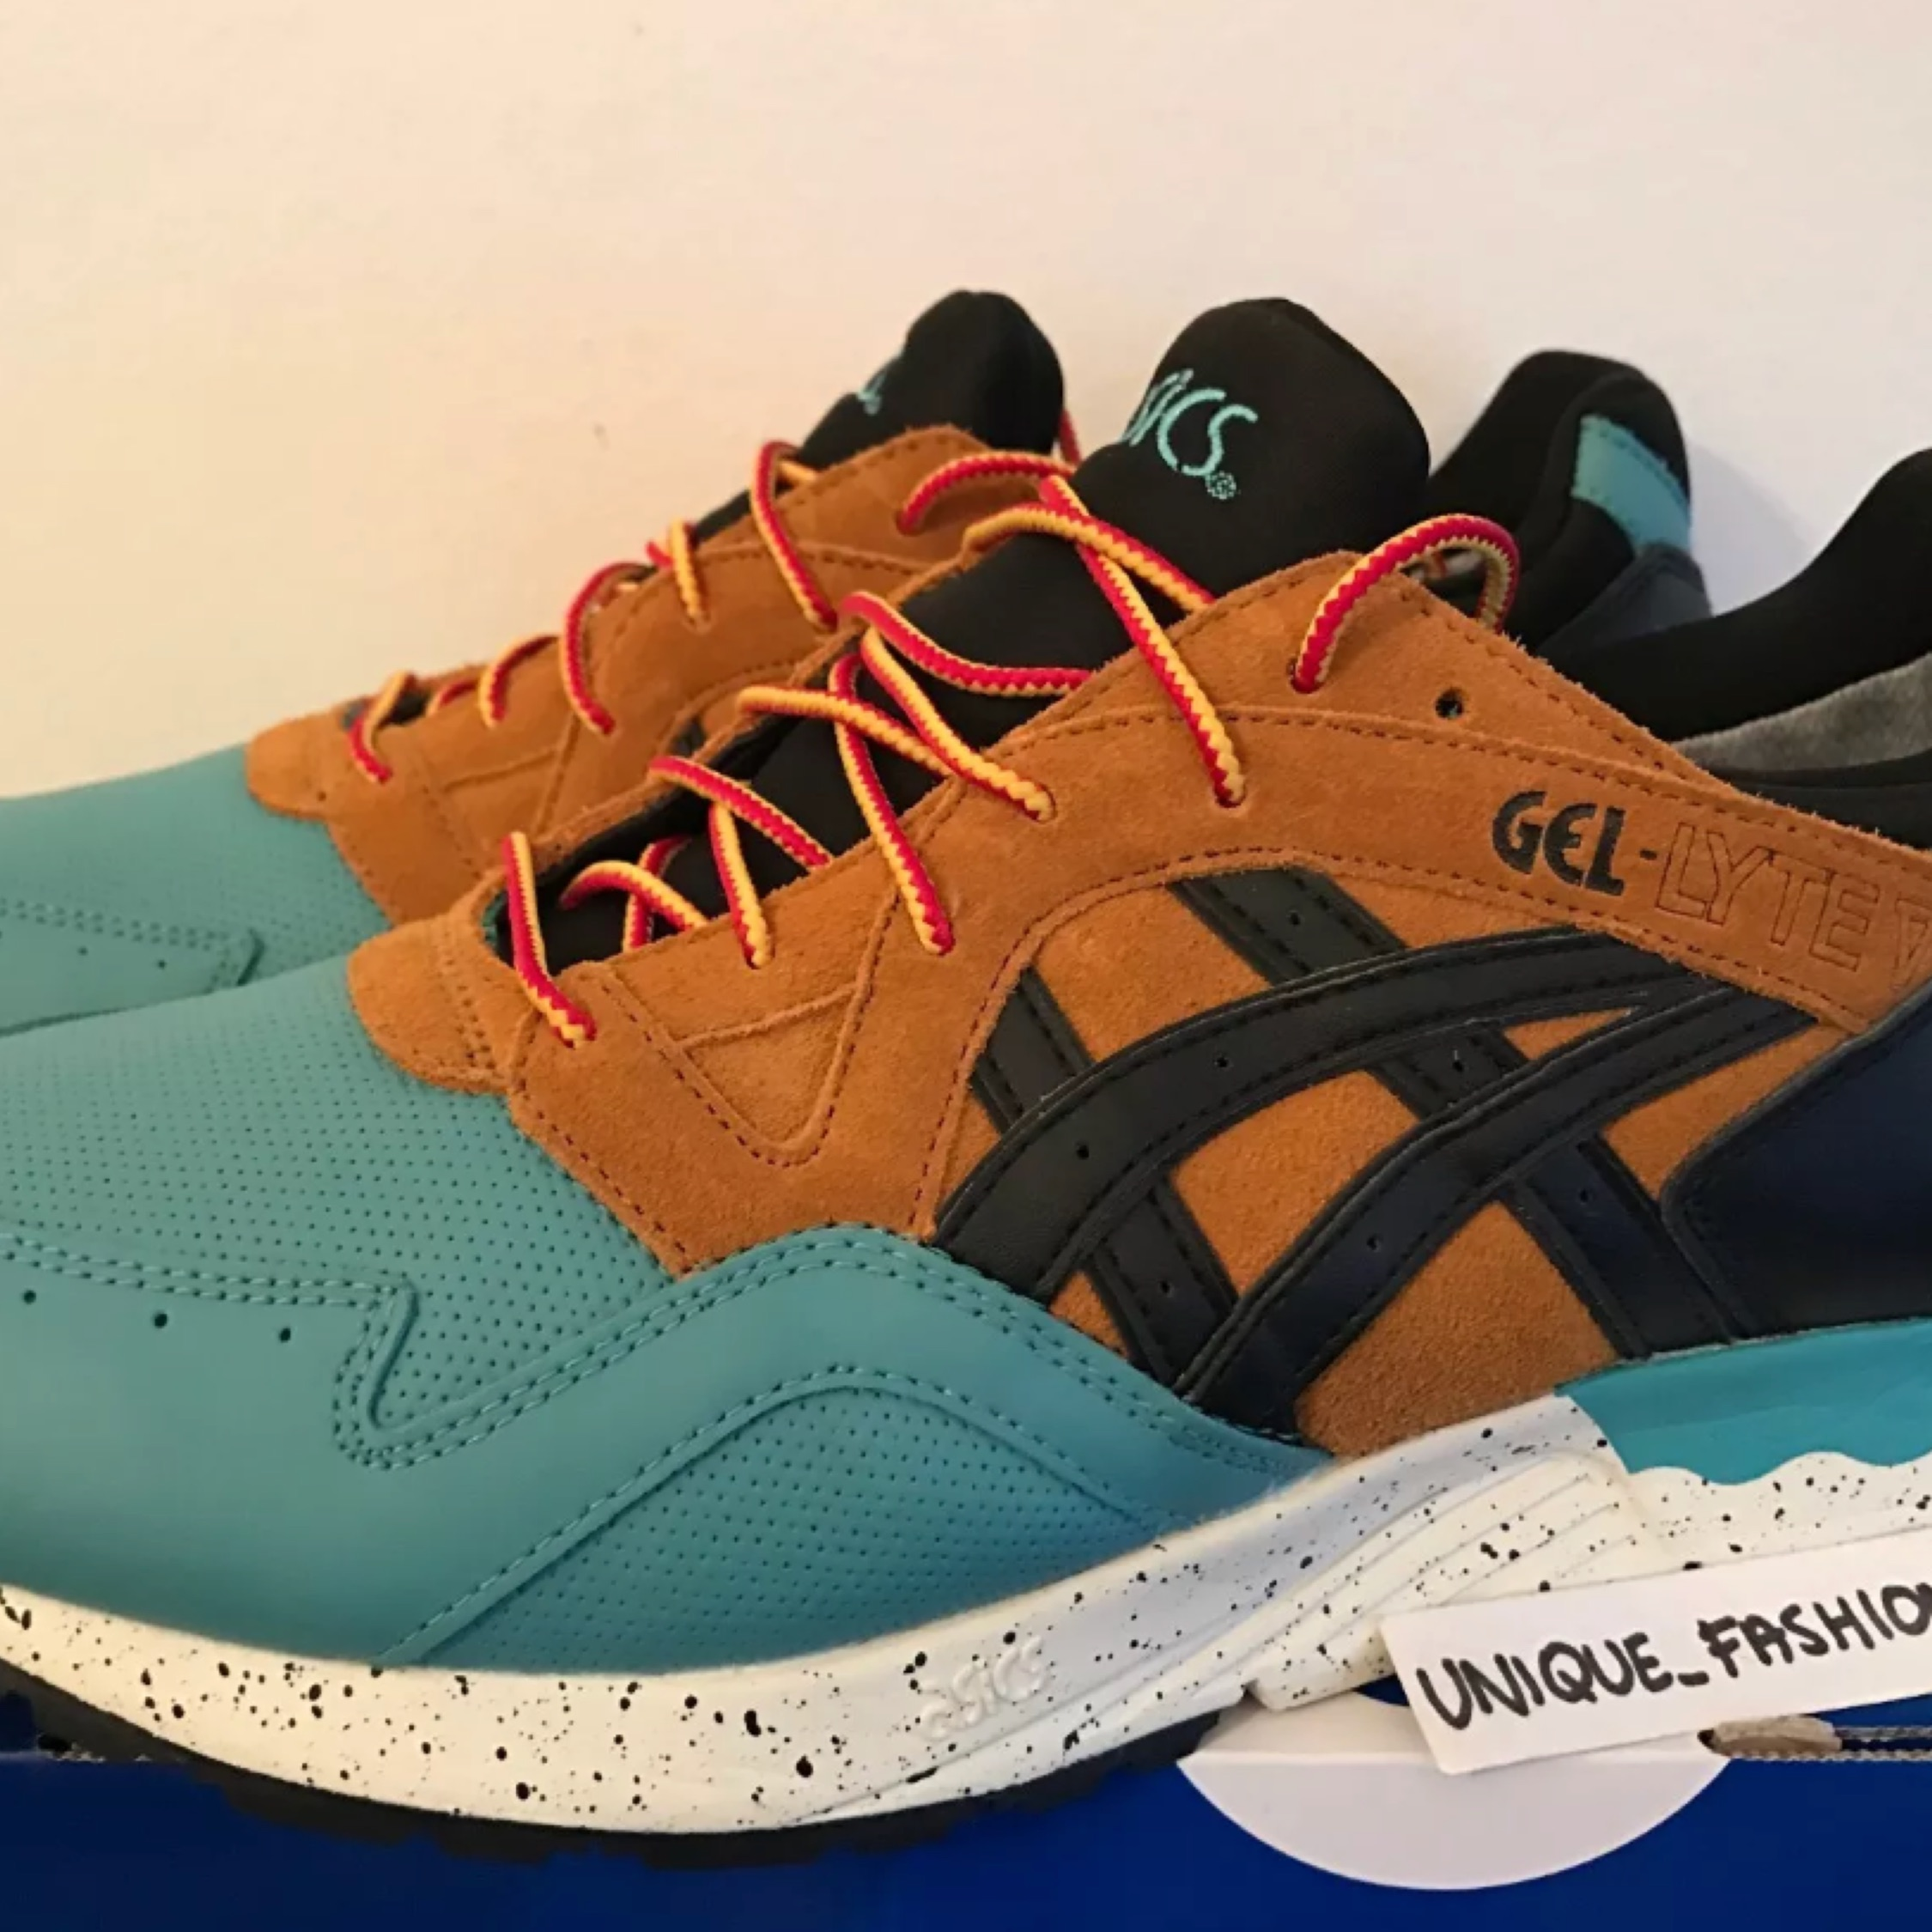 finest selection 0a88f dec64 Asics Gel Lyte V 5 Goretex Us11 Kingfisher